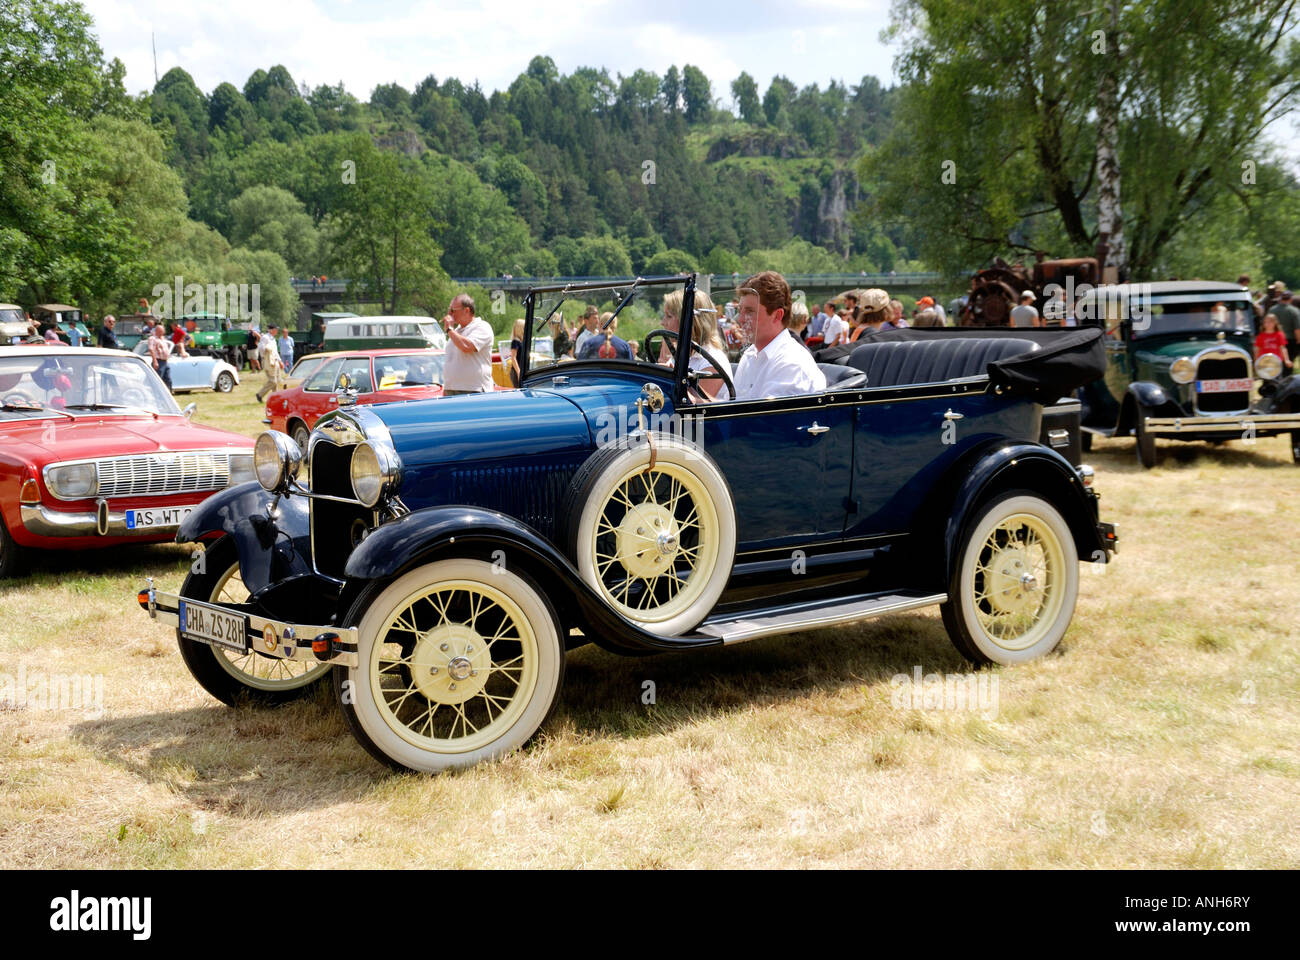 http://c8.alamy.com/comp/ANH6RY/old-american-car-symbolold-american-car-germanyautomobilecarold-caramerican-ANH6RY.jpg